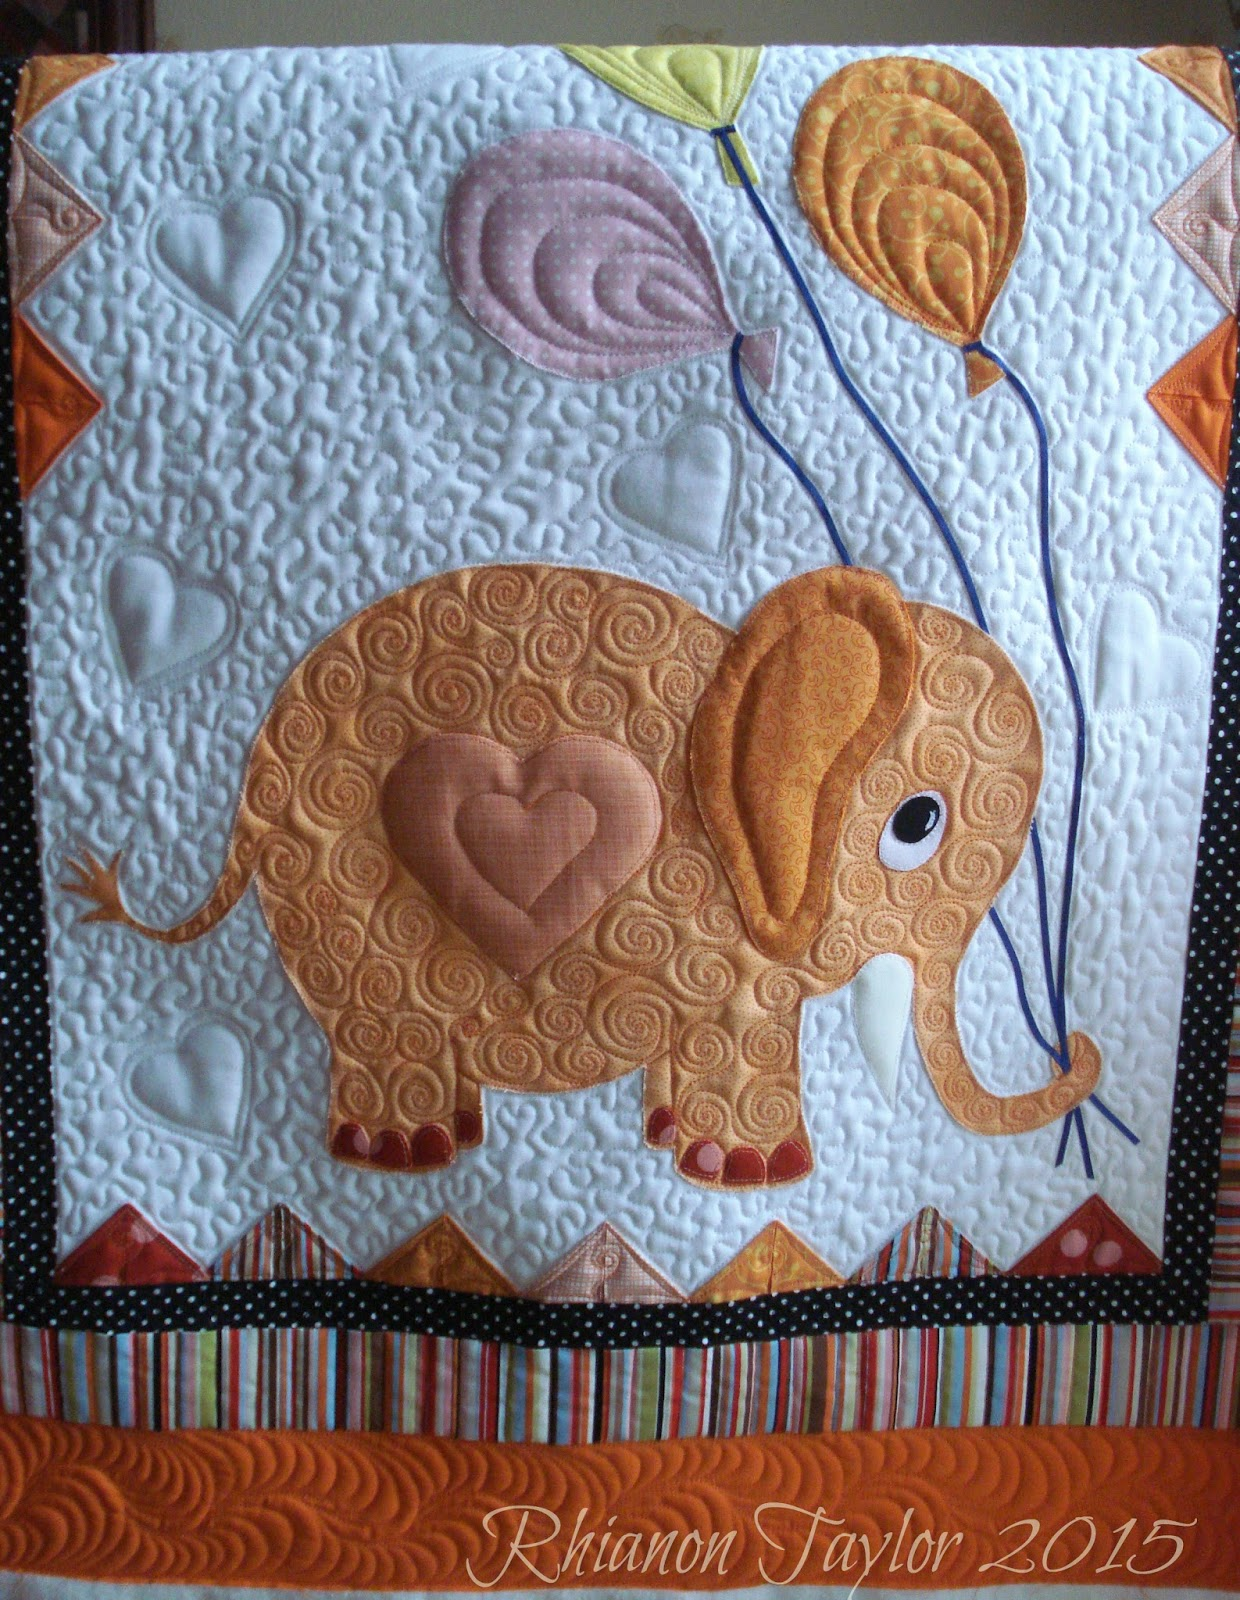 The Nifty Stitcher: Penelope's Elephant Baby Quilt